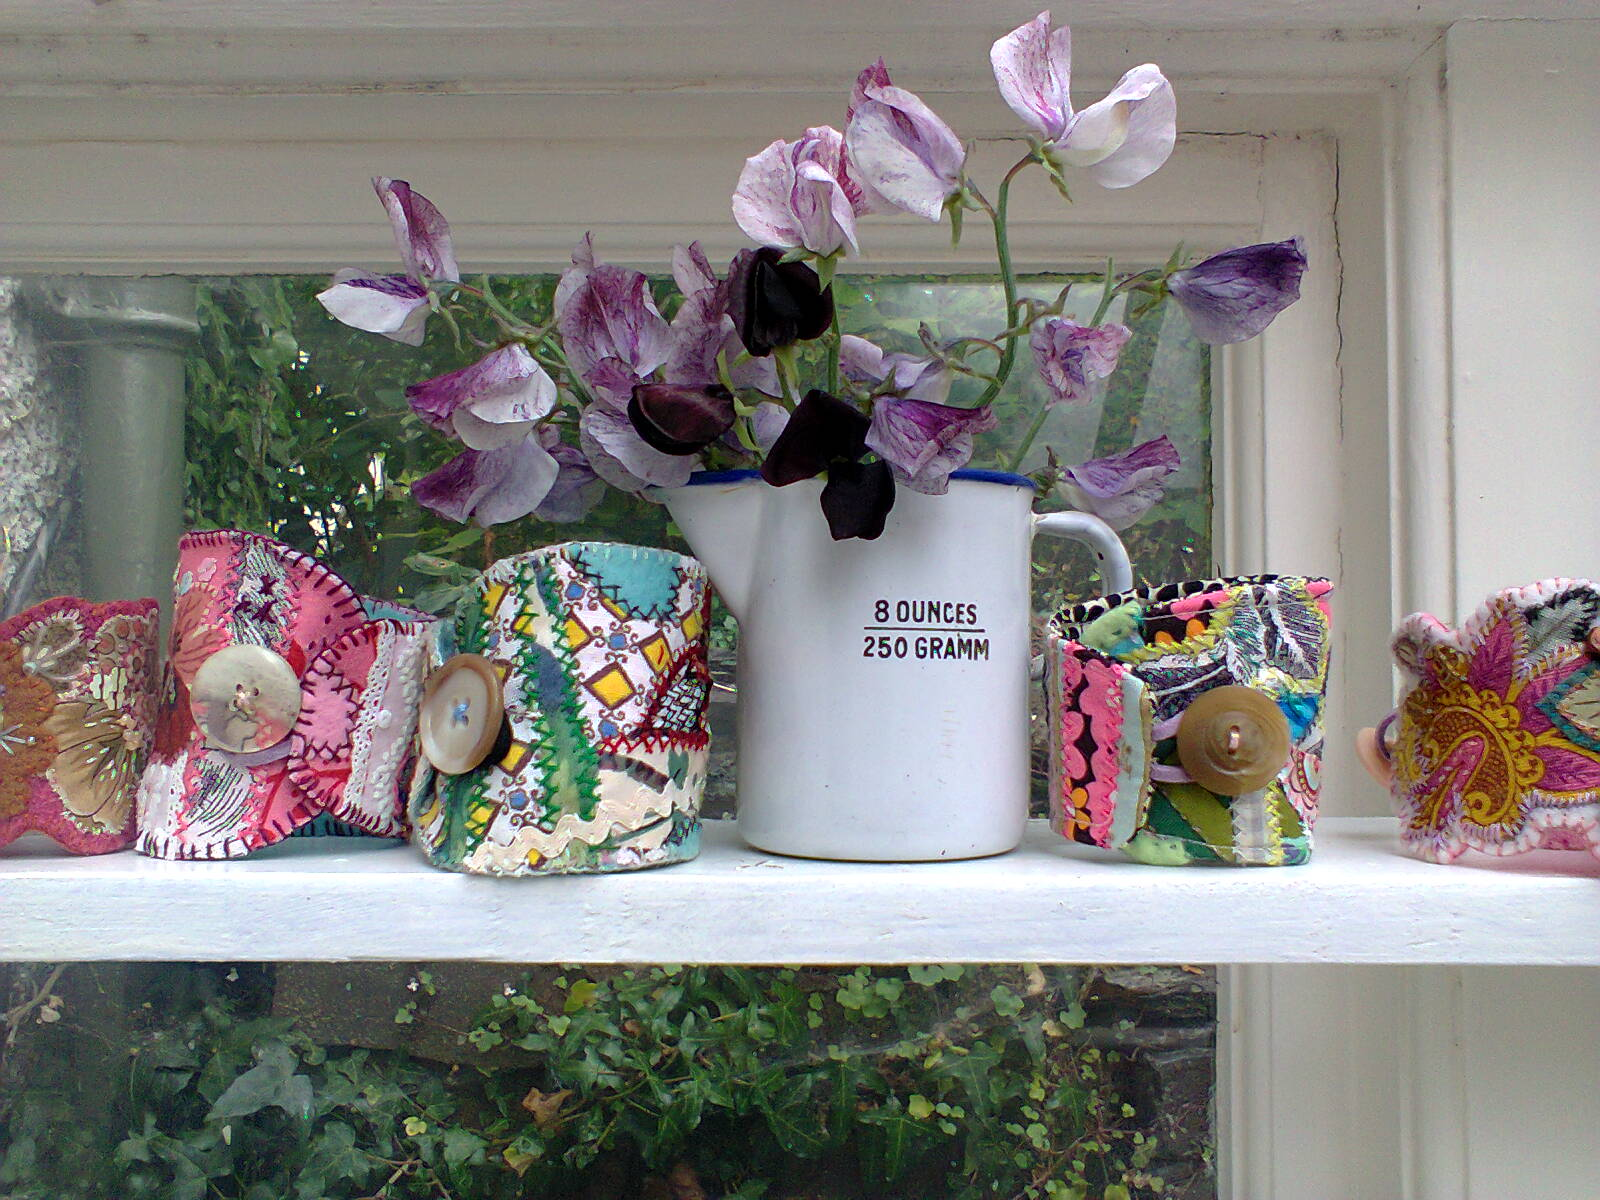 The textile cuffs I made looked lovely with these sweet peas.